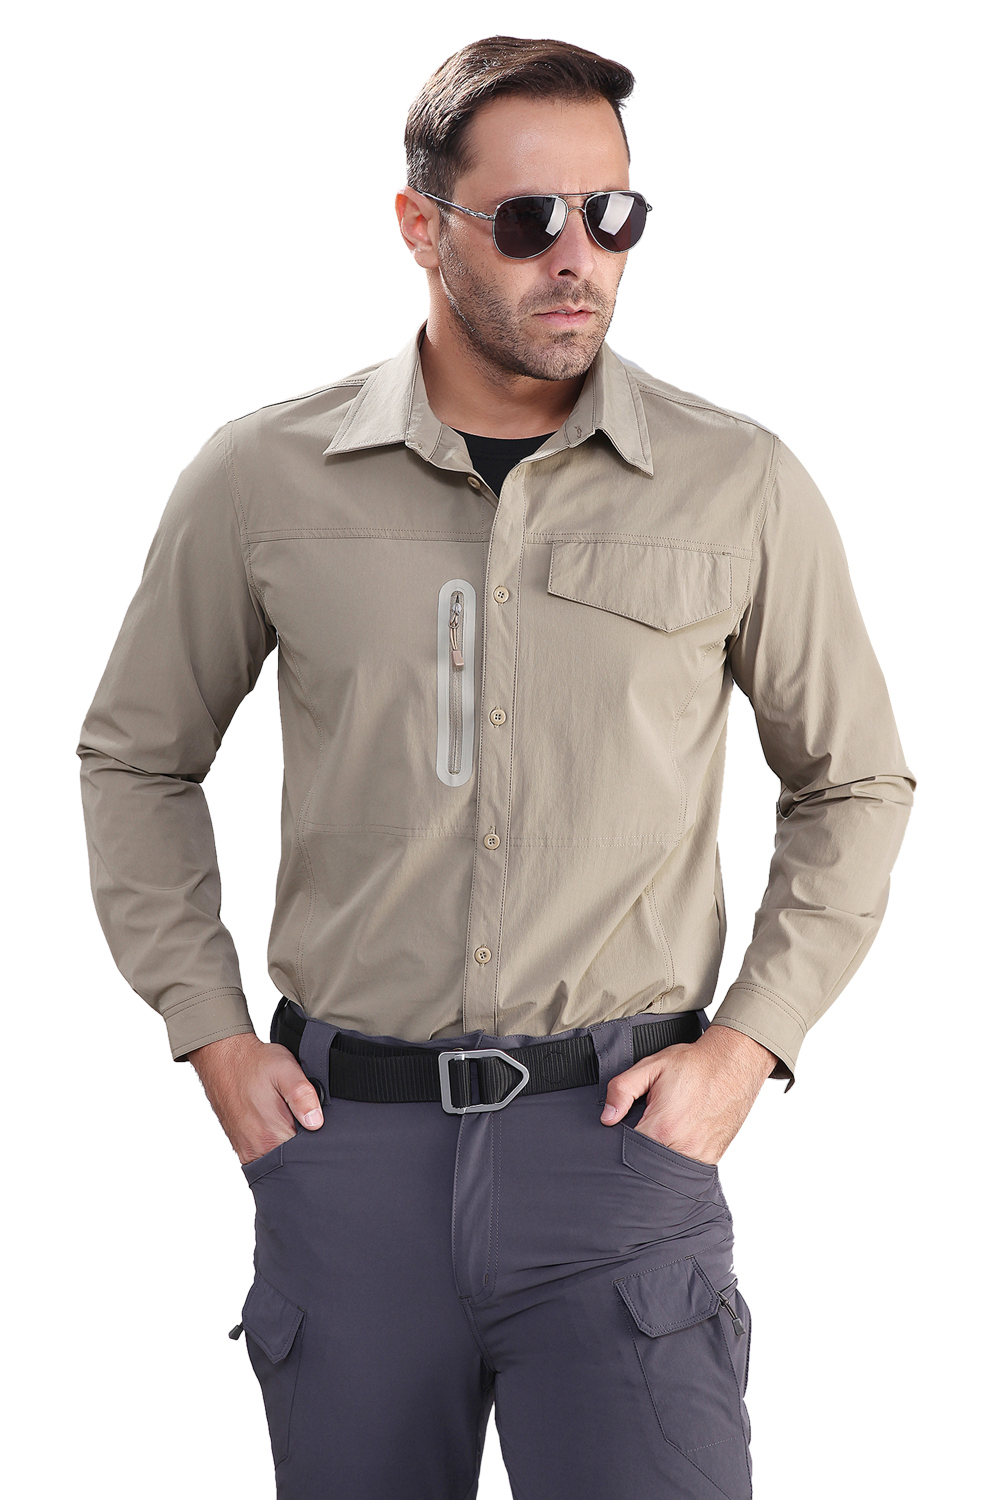 ANTARCTICA High quality Tactical Ripstop Military Shirts